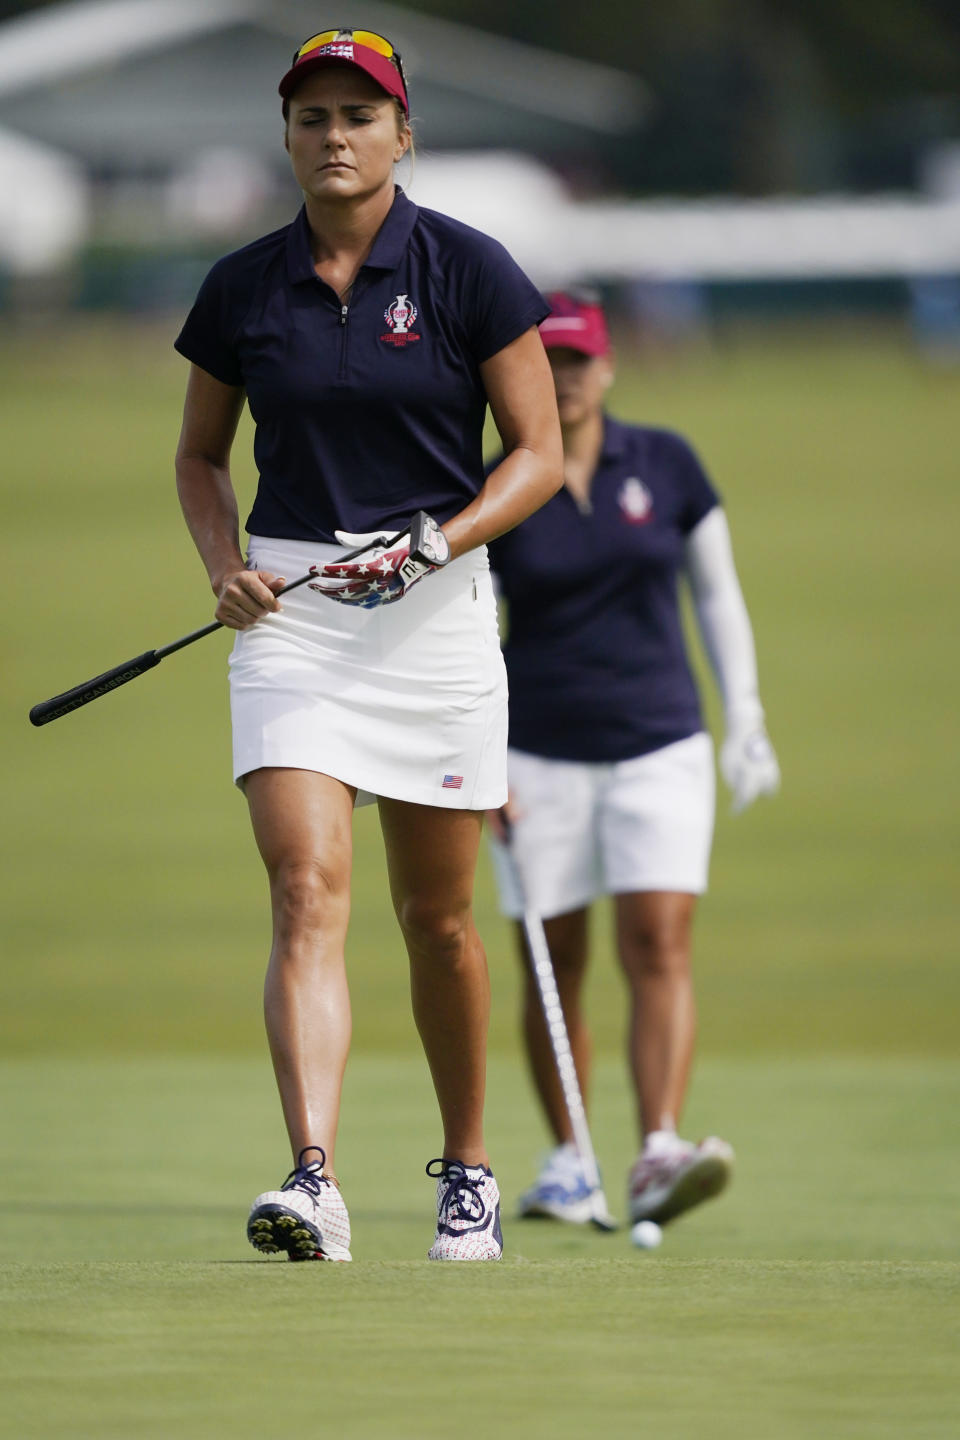 Lexi Thompson walks to the 14th green during practice for the Solheim Cup golf tournament, Friday, Sept. 3, 2021, in Toledo, Ohio. (AP Photo/Carlos Osorio)